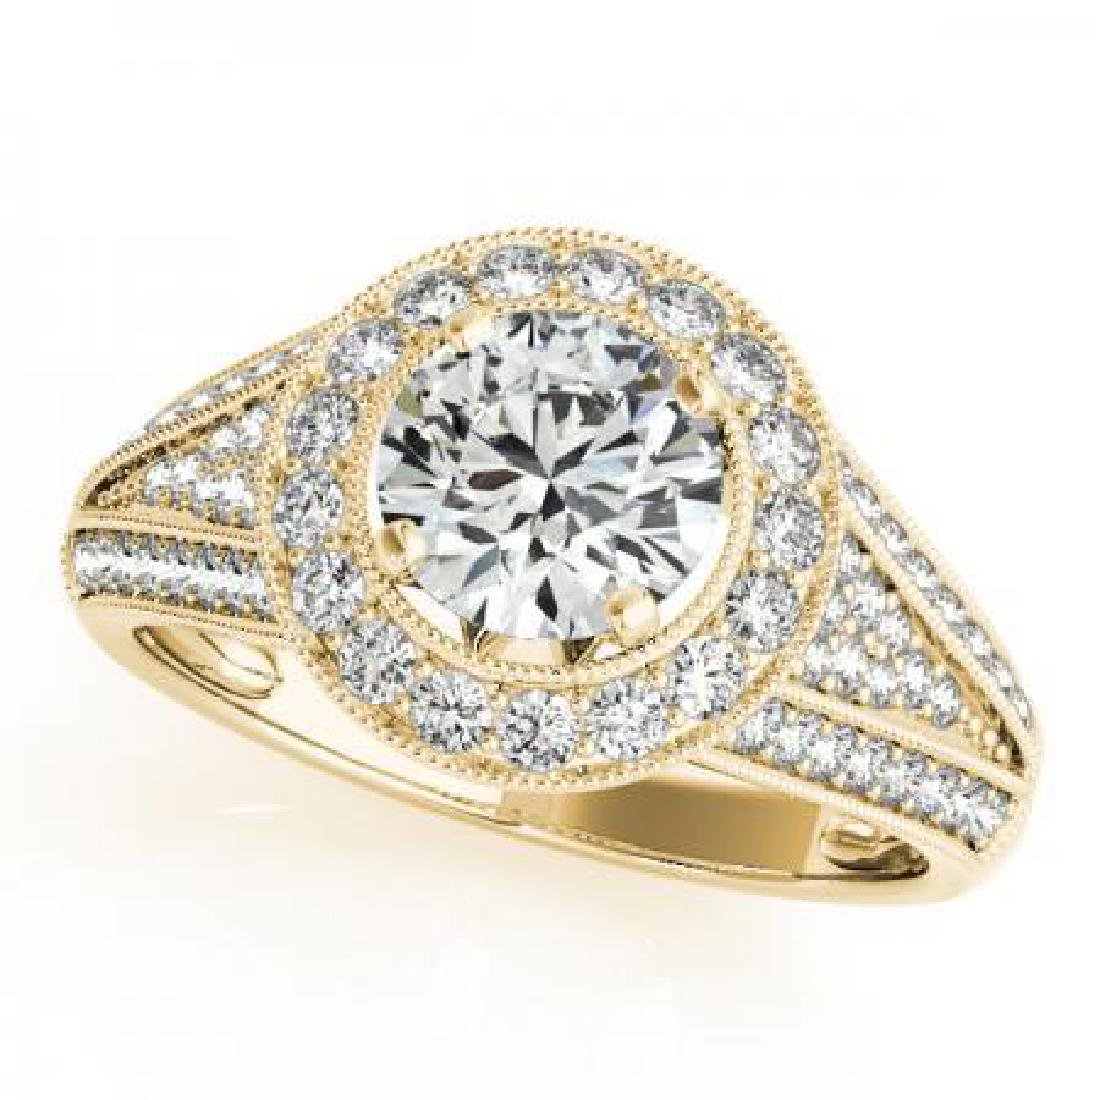 CERTIFIED 18K YELLOW GOLD 1.09 CT G-H/VS-SI1 DIAMOND HA